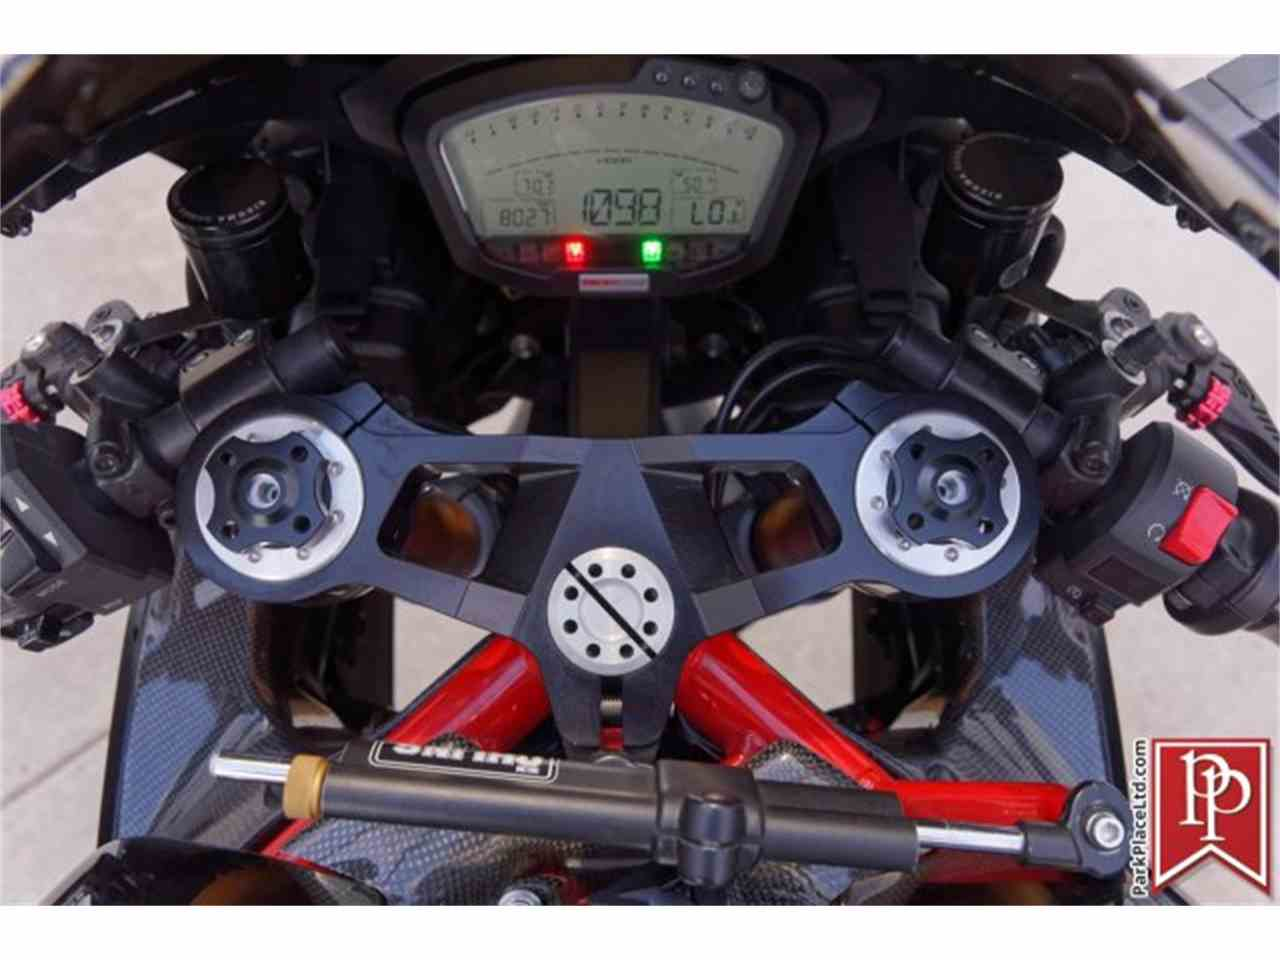 Large Picture of '08 Ducati Motorcycle located in Bellevue Washington - $16,950.00 - MZF6